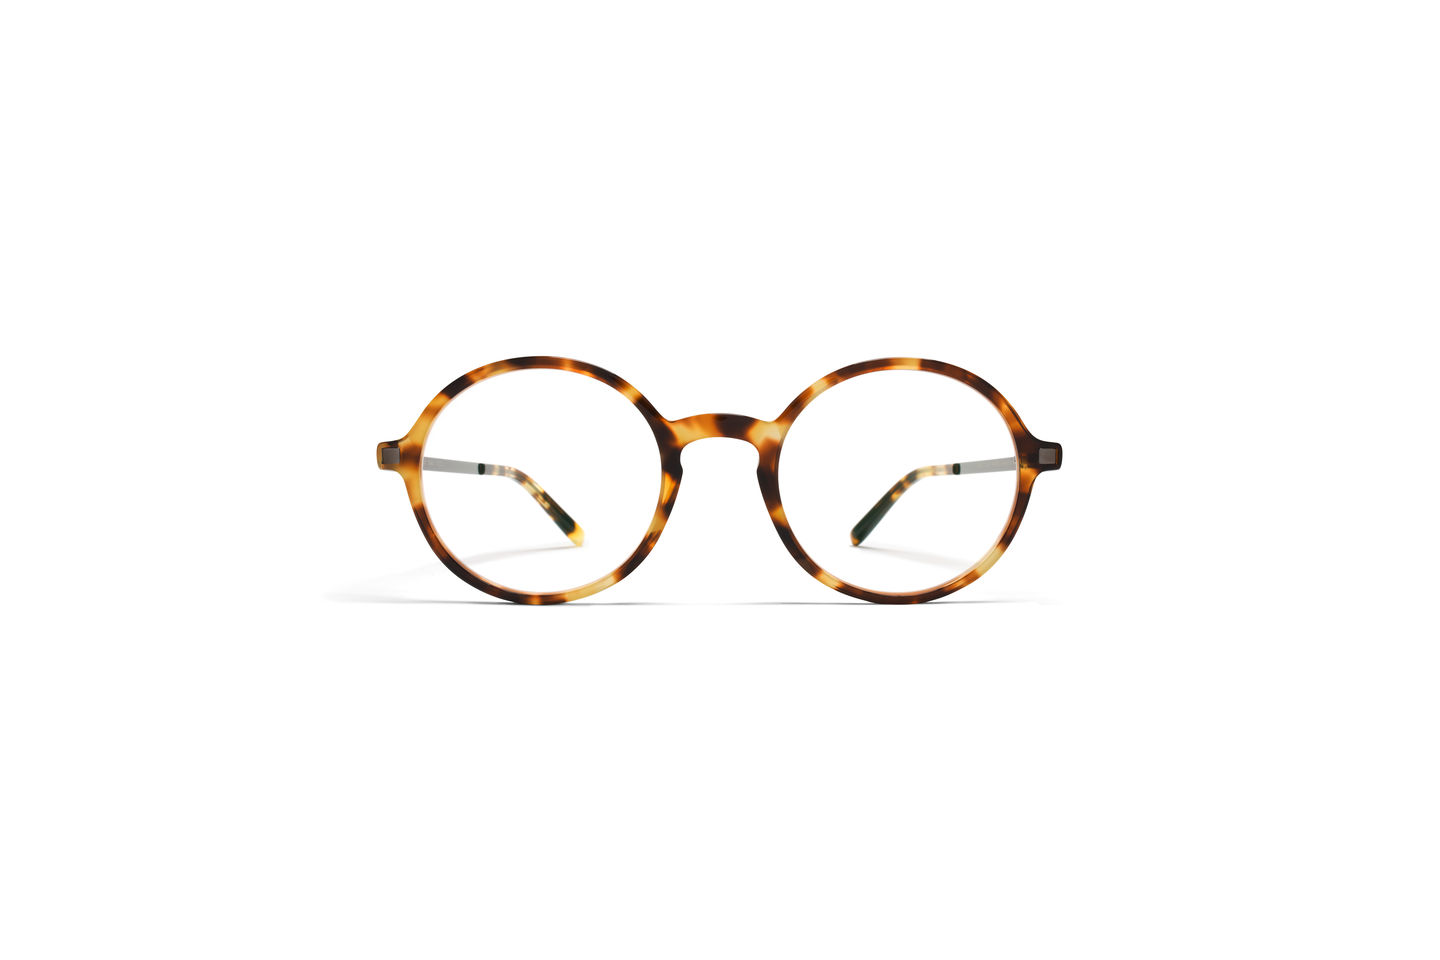 mykita-lite-rx-tomkin-cocoa-sprinkles-shinygraphit56b4d62a22c6c.jpg